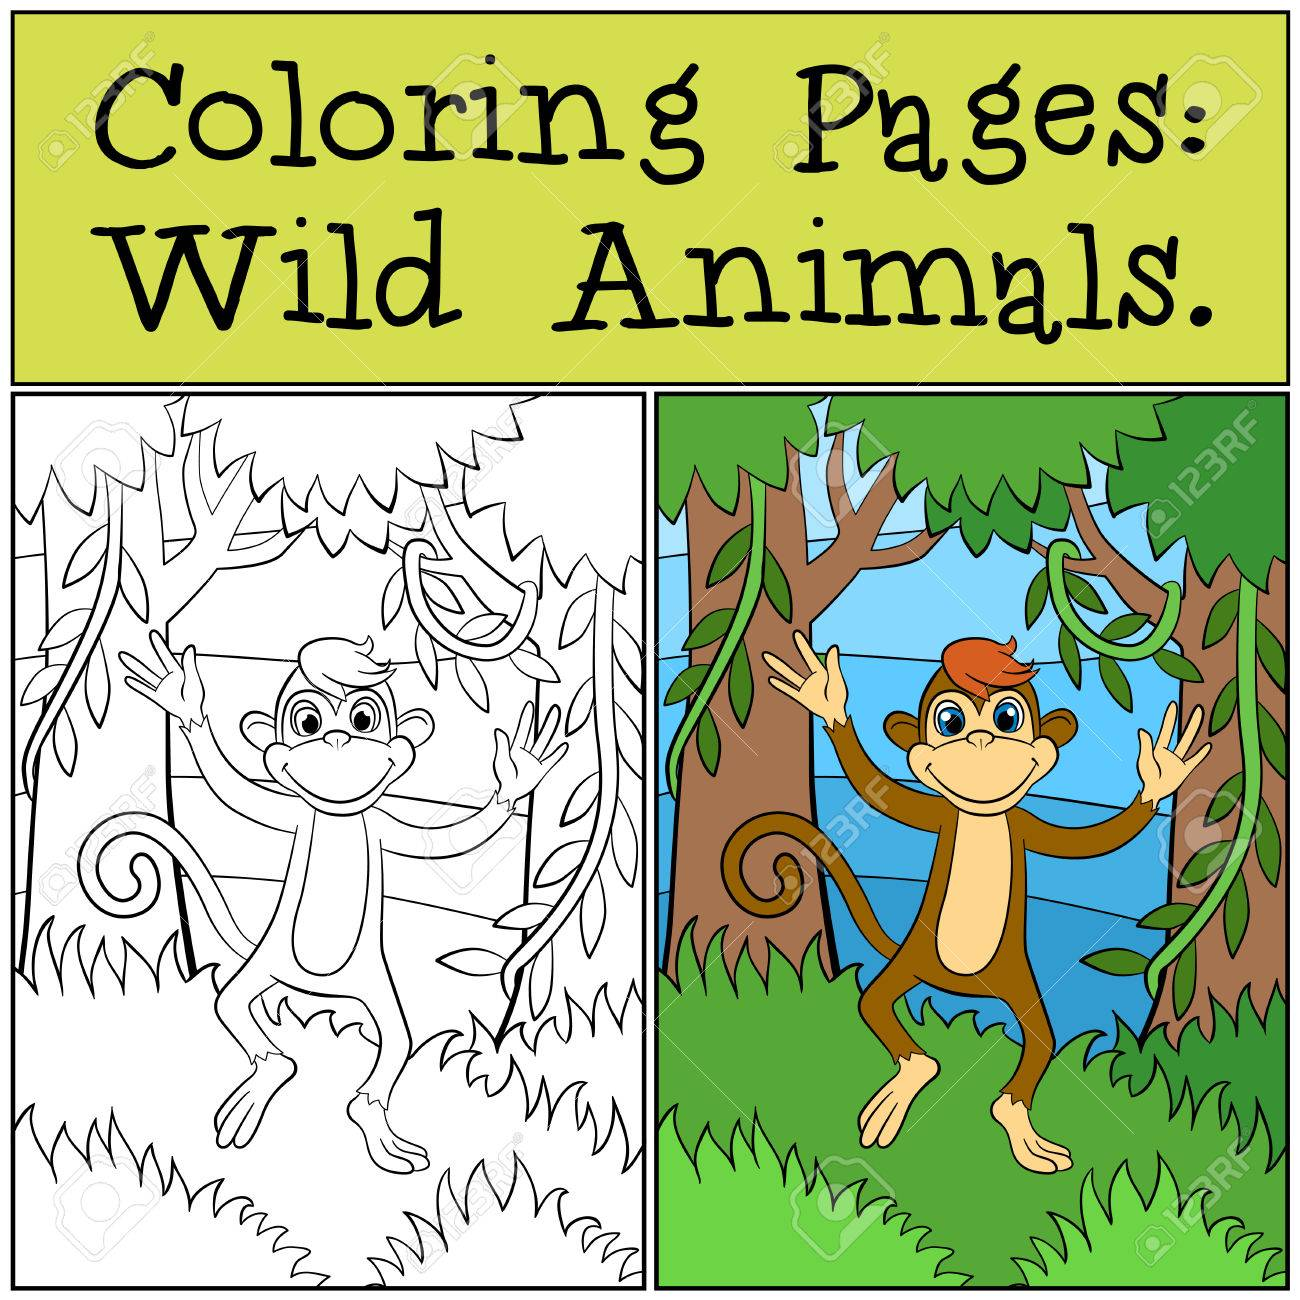 Coloring Pages Wild Animals Little Cute Monkey Runs And Smiles Stock Vector